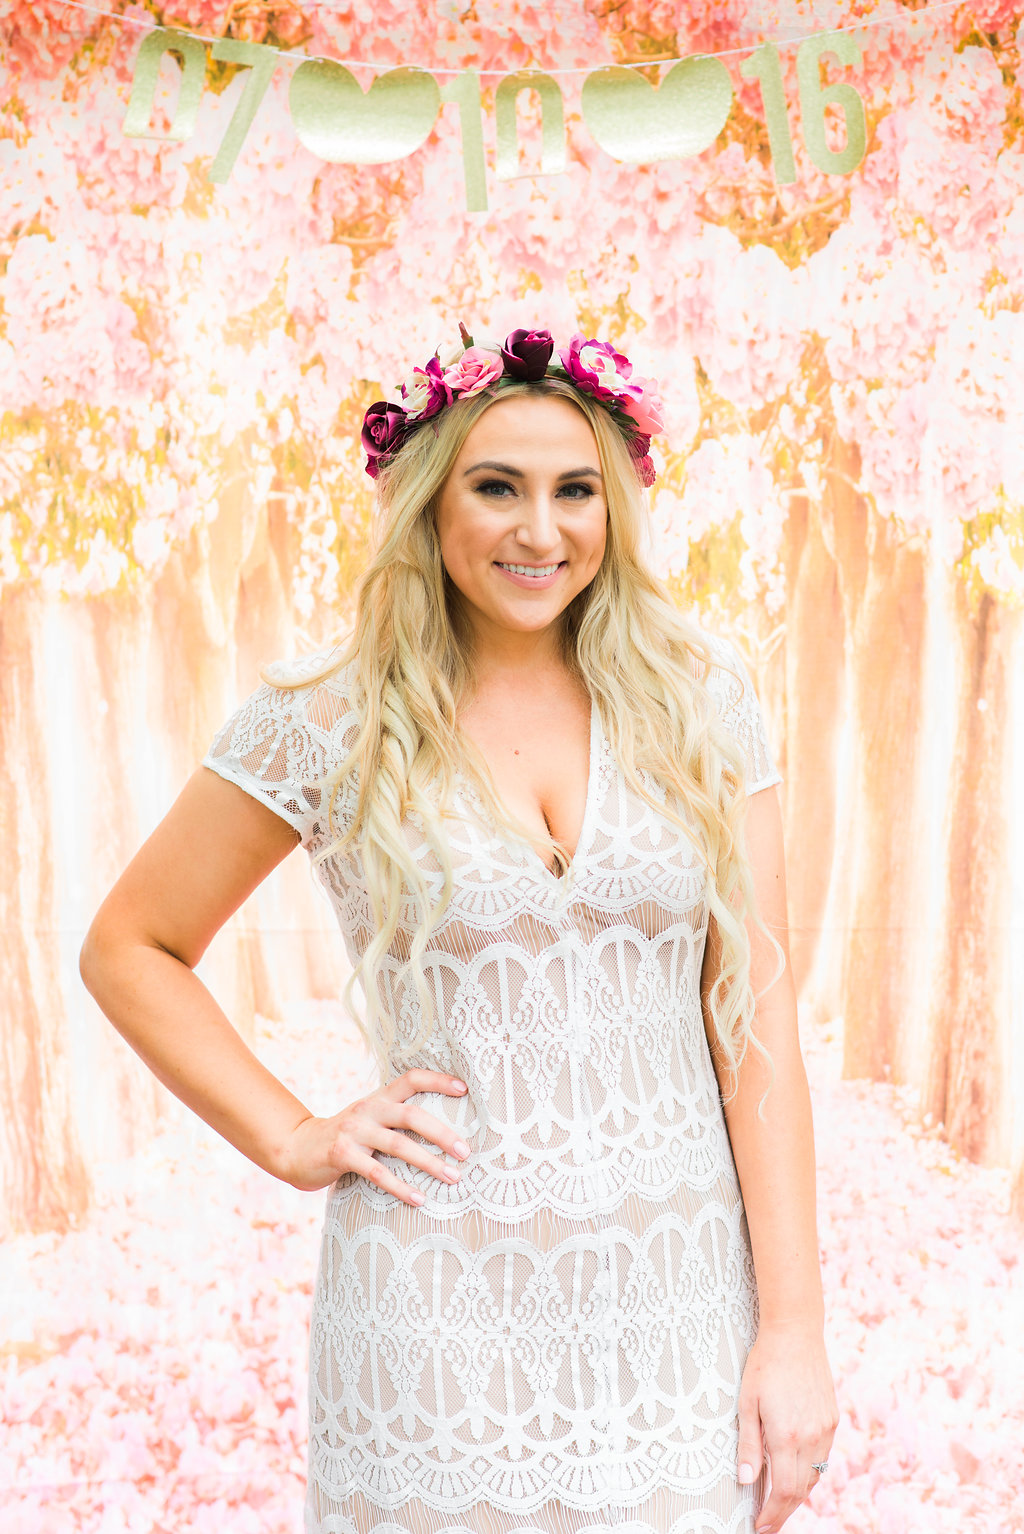 garden bridal shower photo booth with the bride in a stunning lace bridal shower dress and